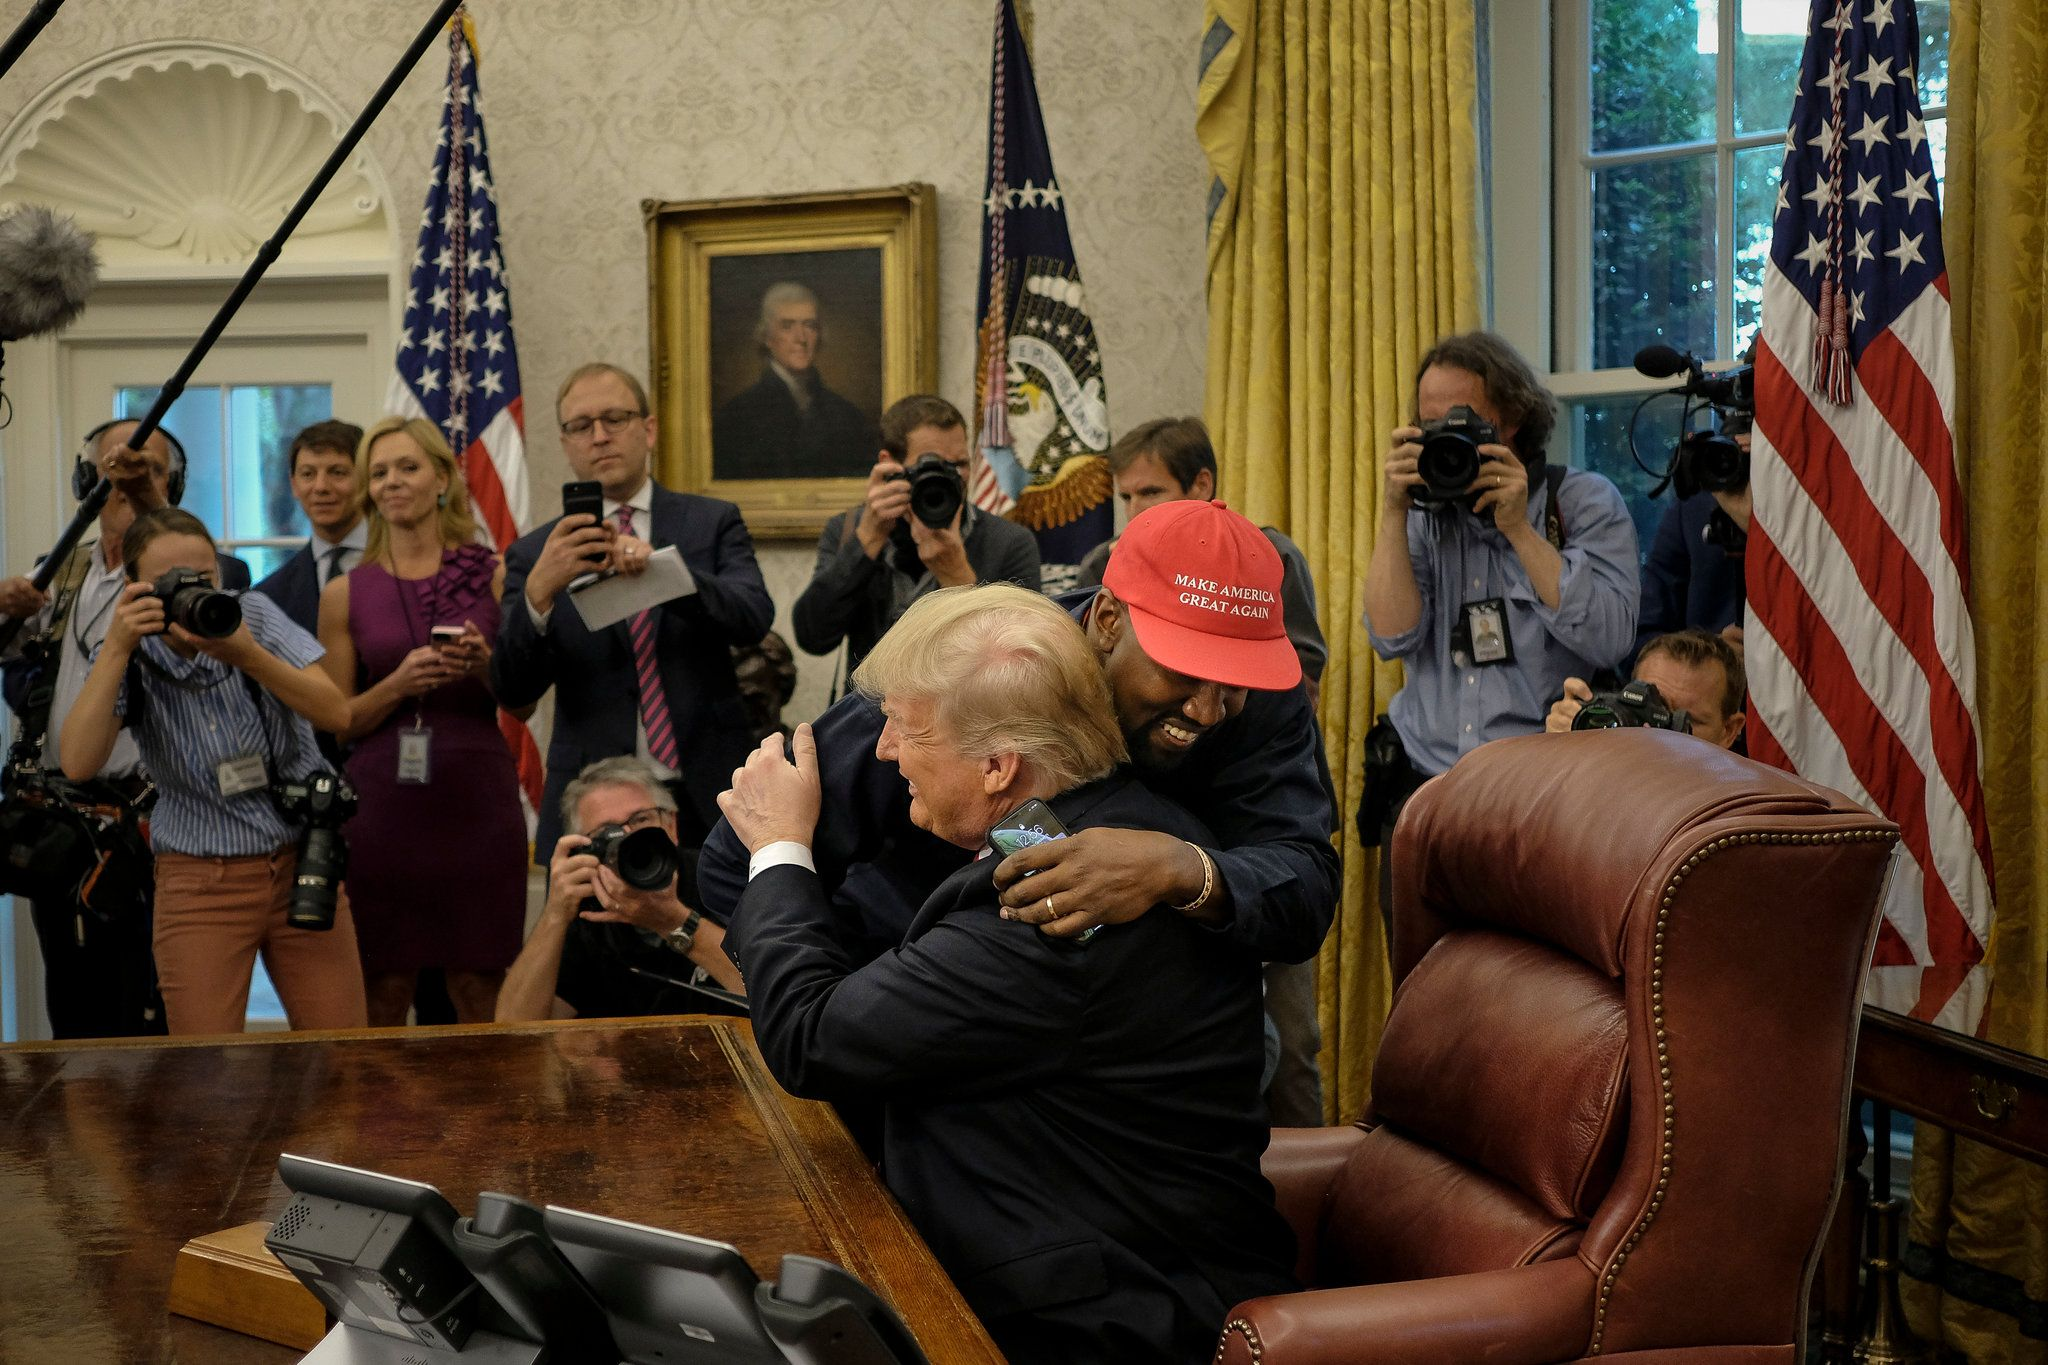 Kanye West S Oval Office Rant Steals The Spotlight From Trump With Images Latest World News